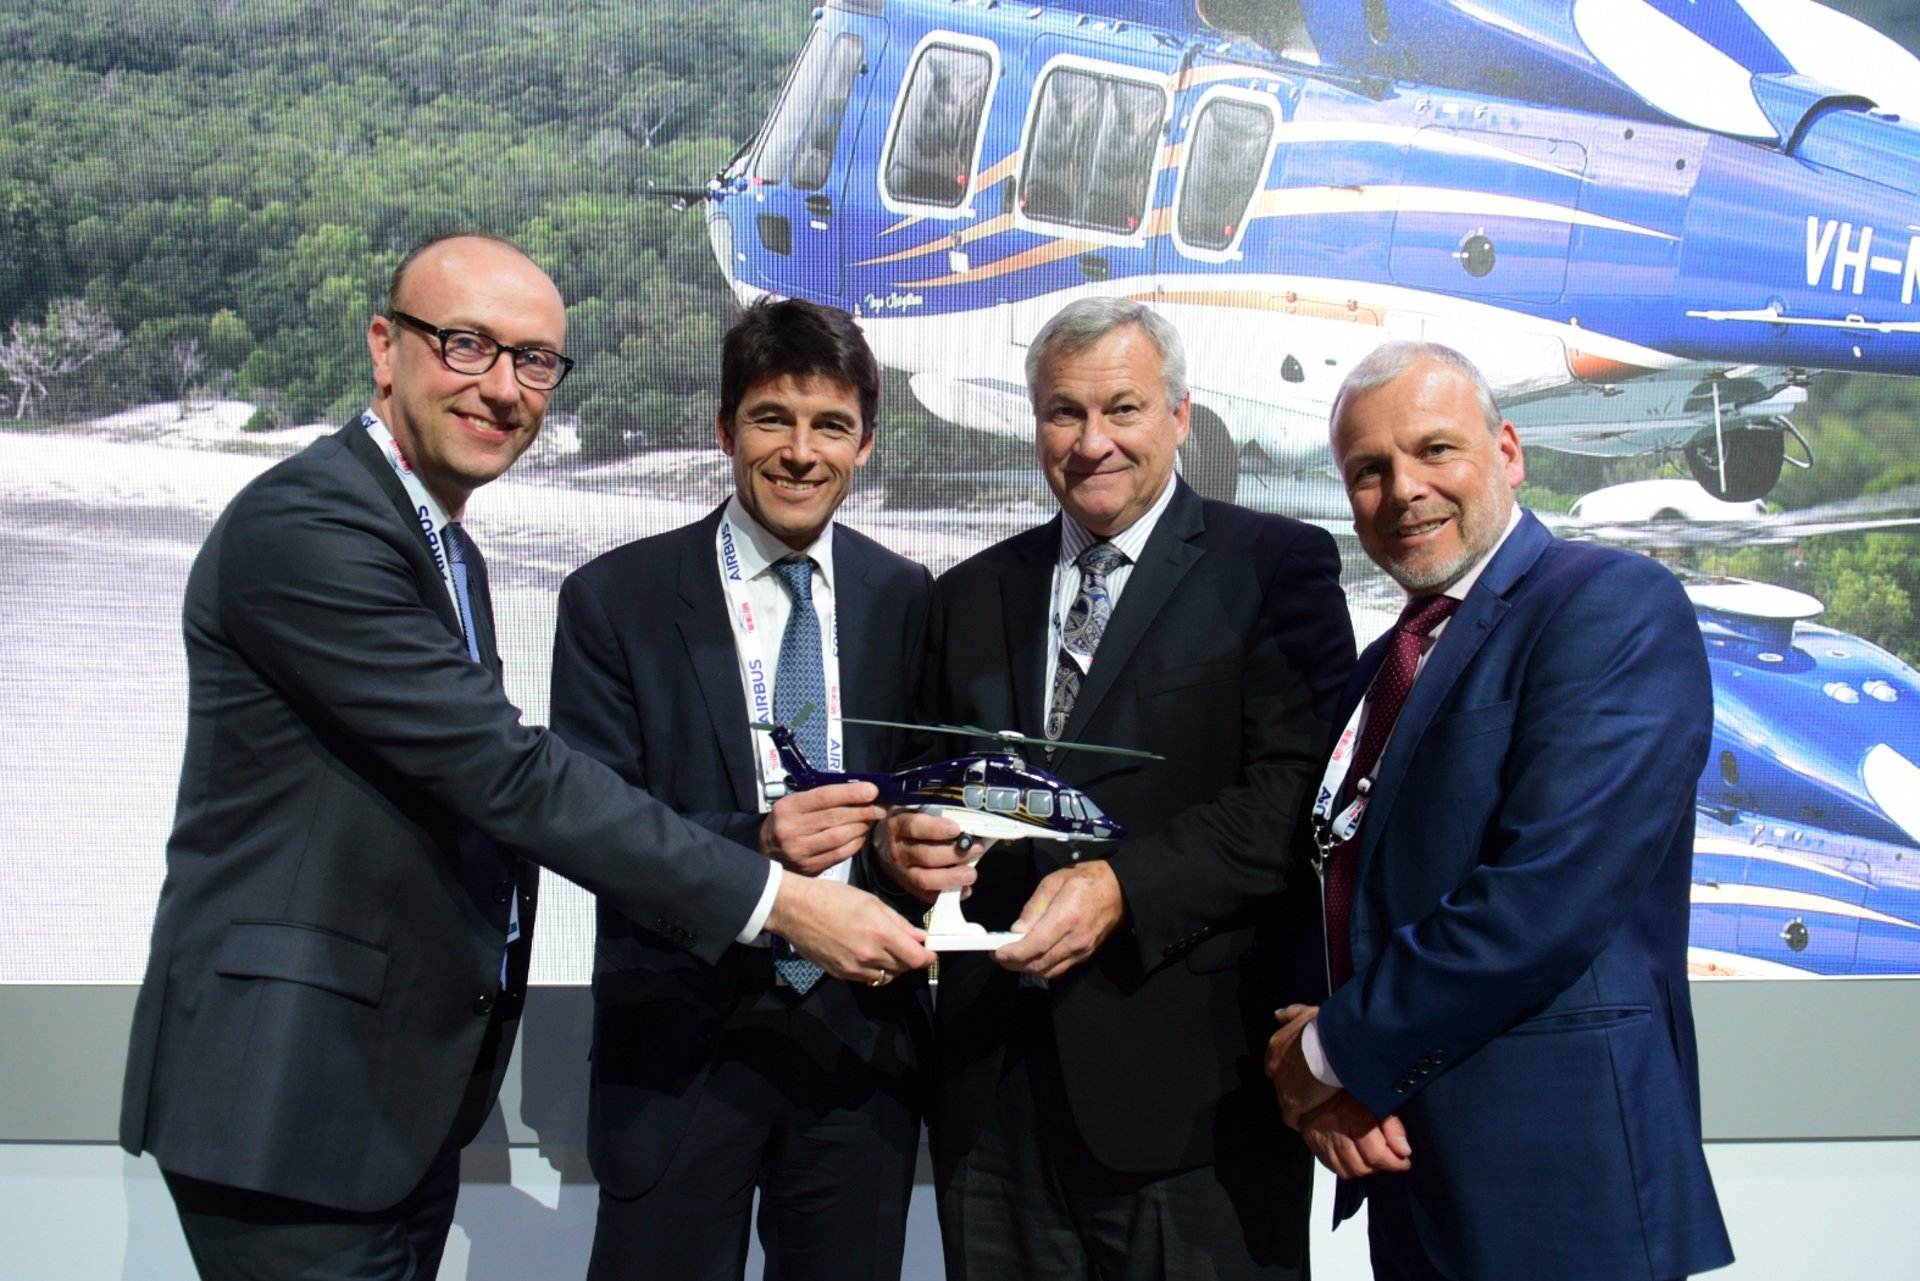 Babcock Australasia, the aerospace and defence company, is celebrating its first year of Airbus H175 helicopter operations in Timor Leste after clocking up nearly 1400 flights providing offshore aviation services for their oil and gas customer.